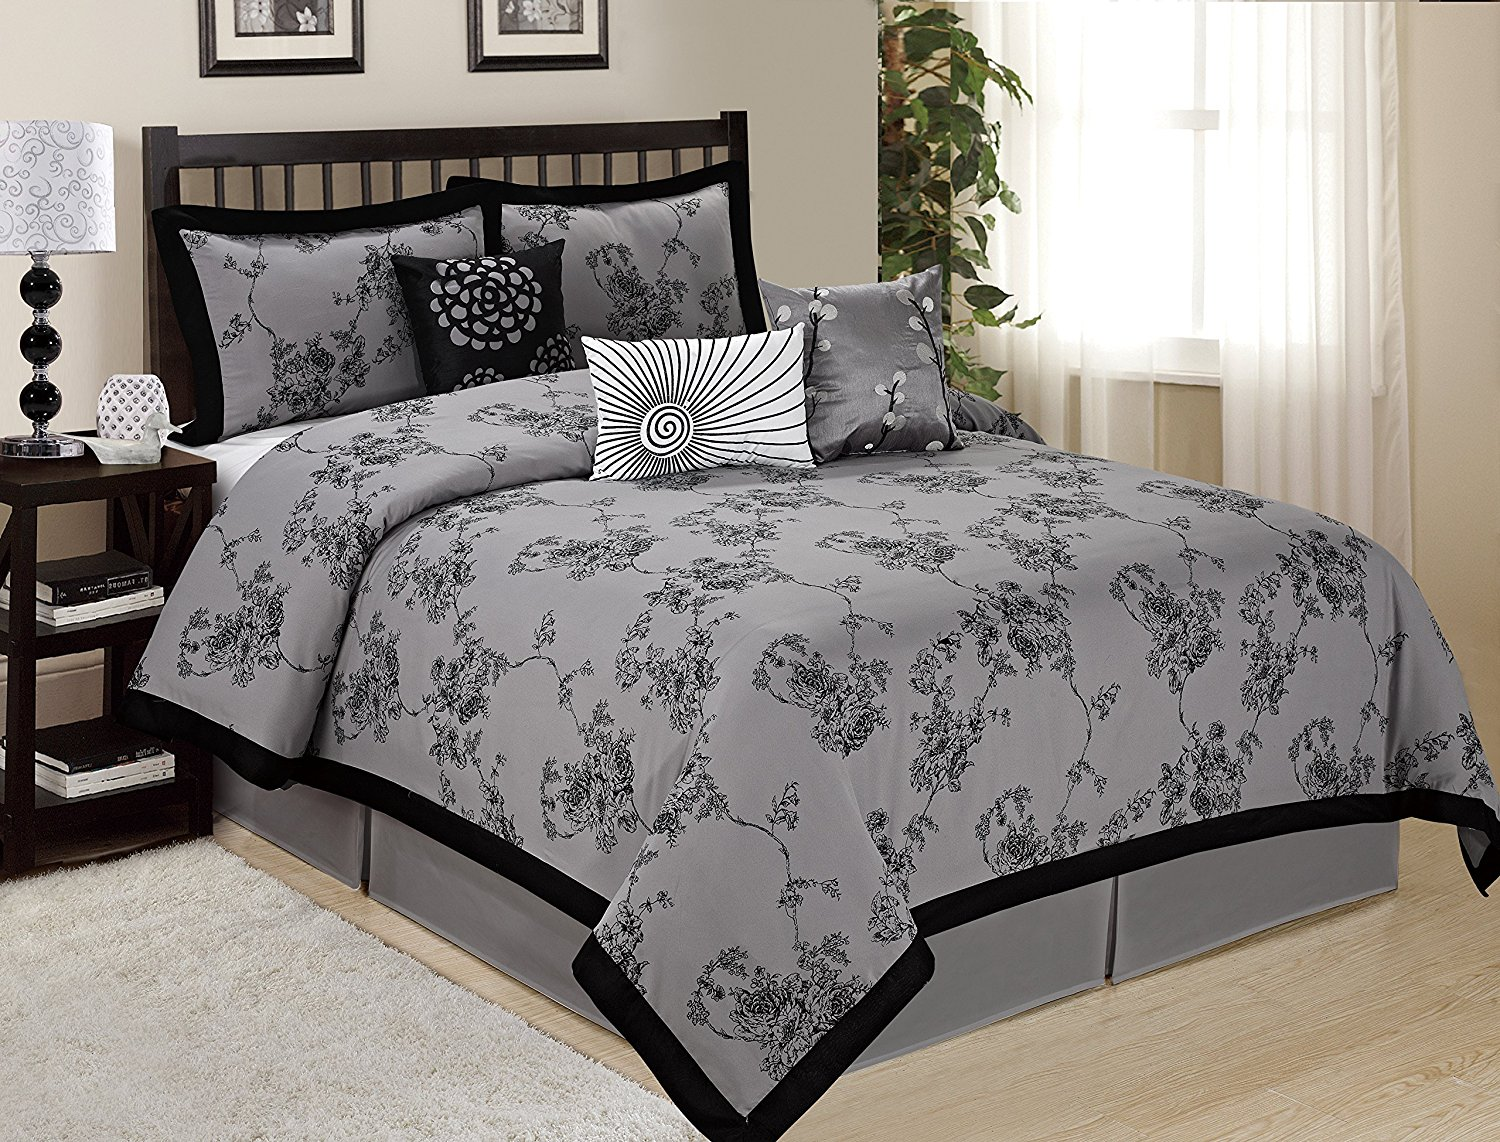 7 Piece SUNRISE Floral Printed Comforter Set Queen King CalKing Size (King, Gray)